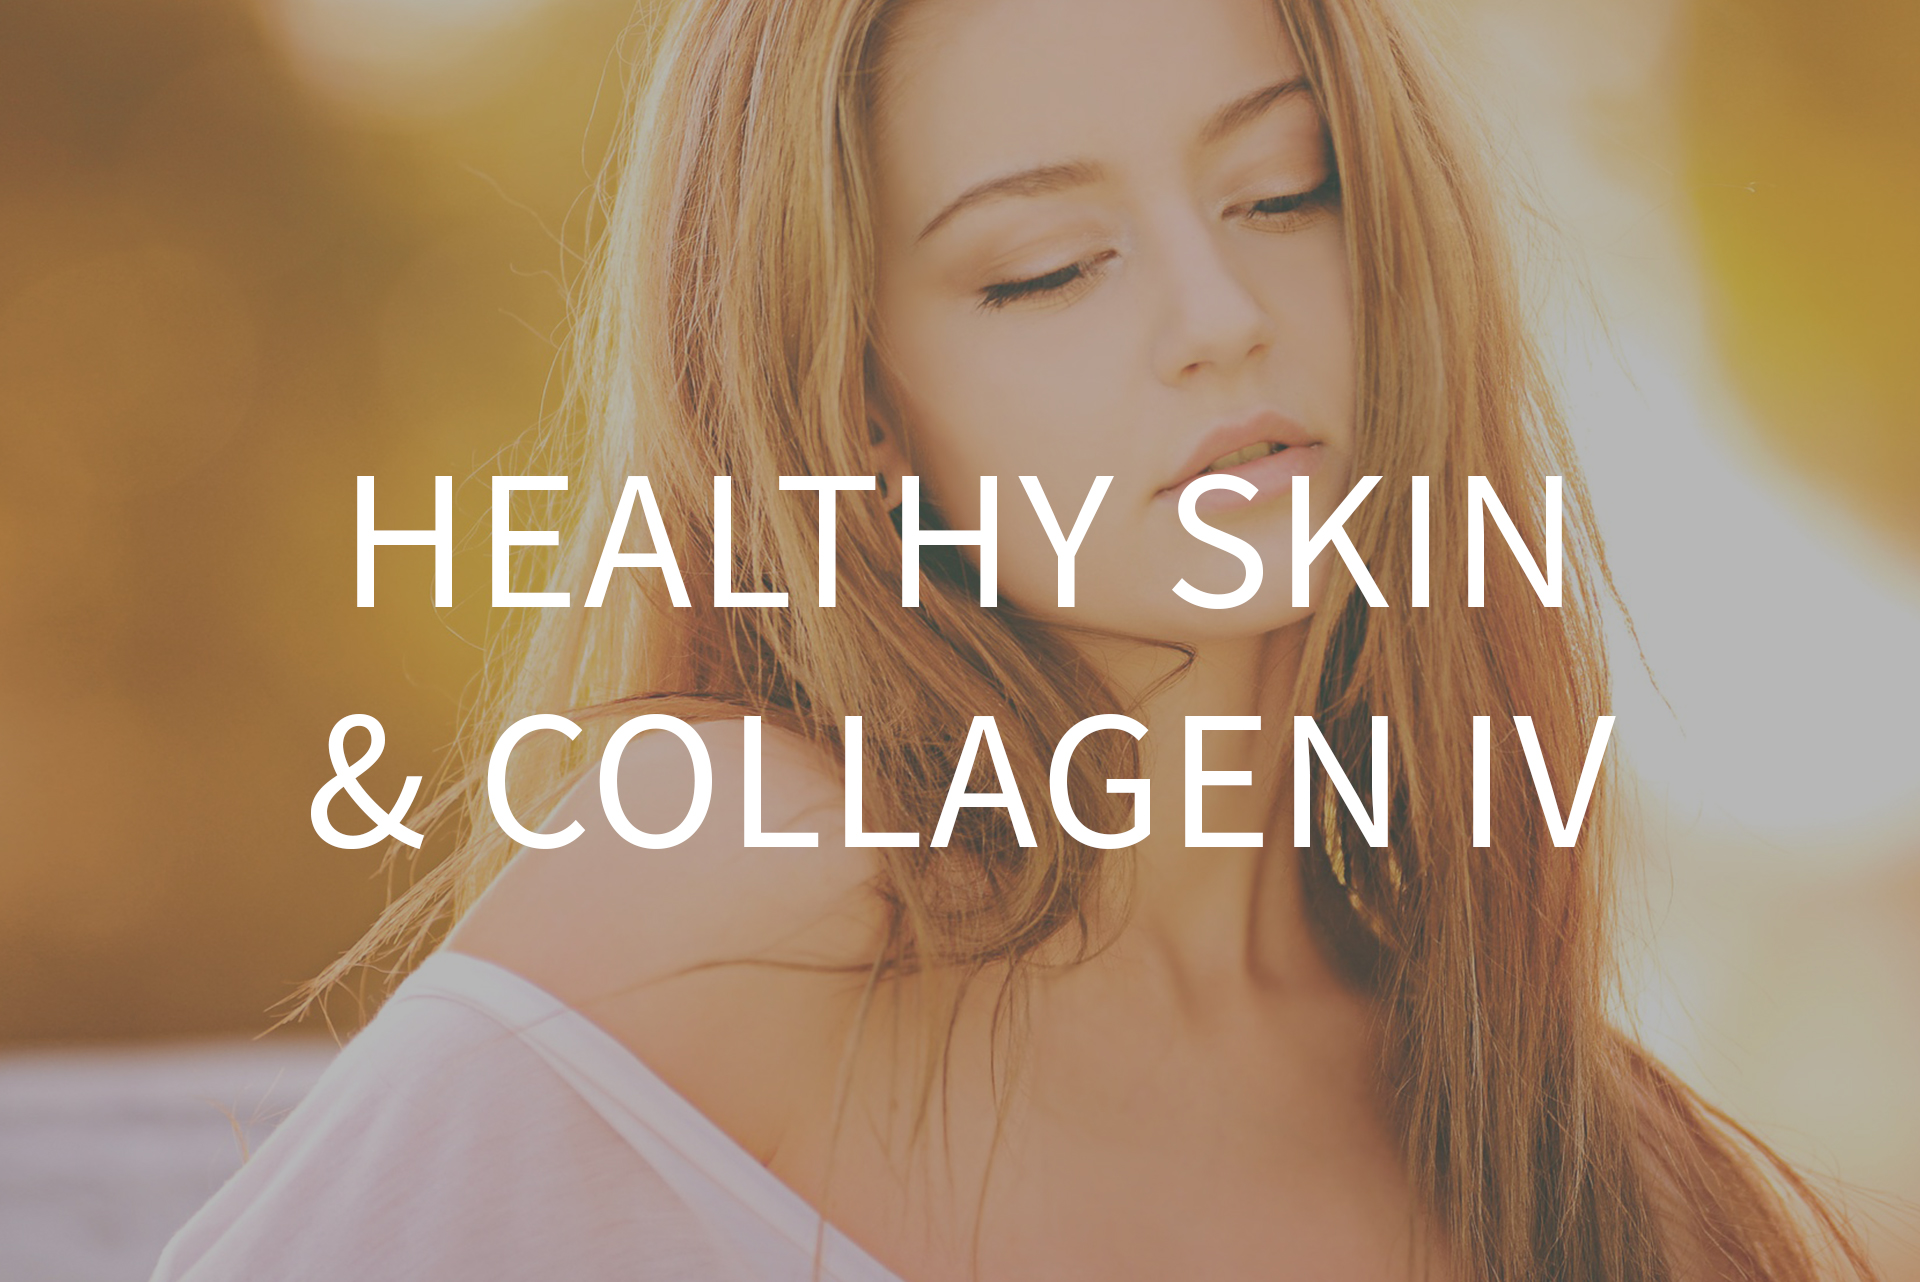 HEALTHY SKIN & COLLAGEN IV - IV nutrition Therapy - Emerald Wellness.jpg